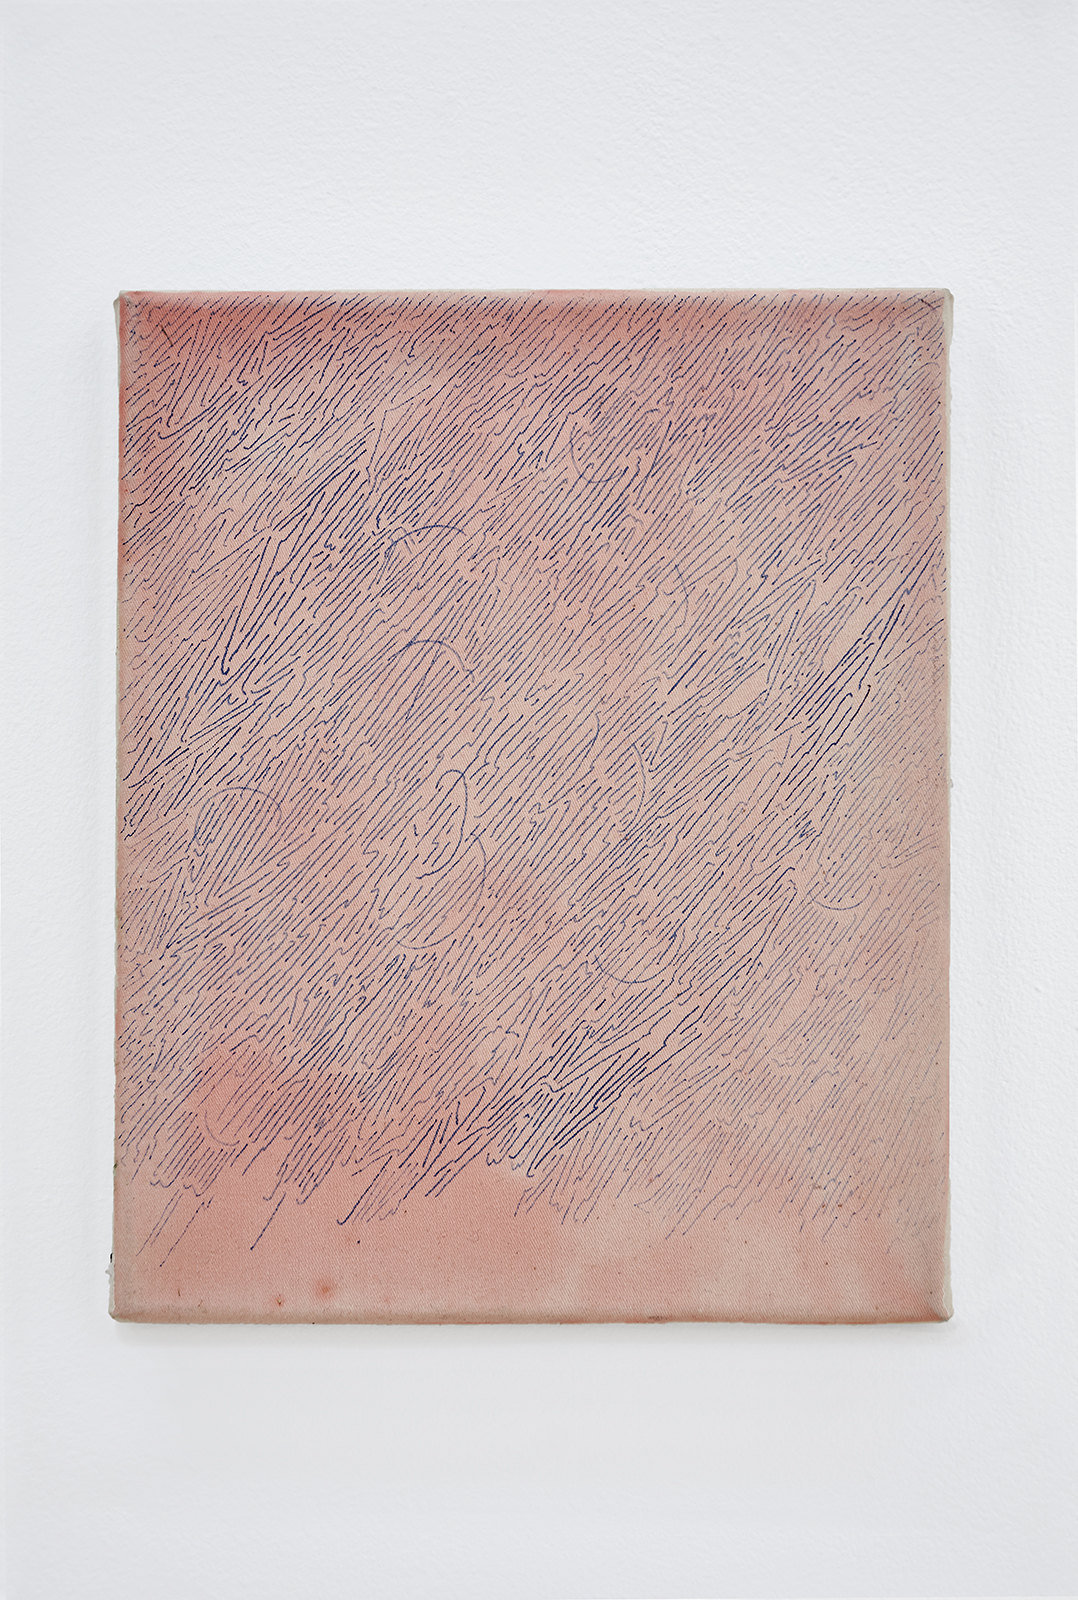 Anna Schachinger, Untitled, 2014. Ink and rabbit skin glue on canvas, 22 x 27 cm (8.5 x 10.5 in.)